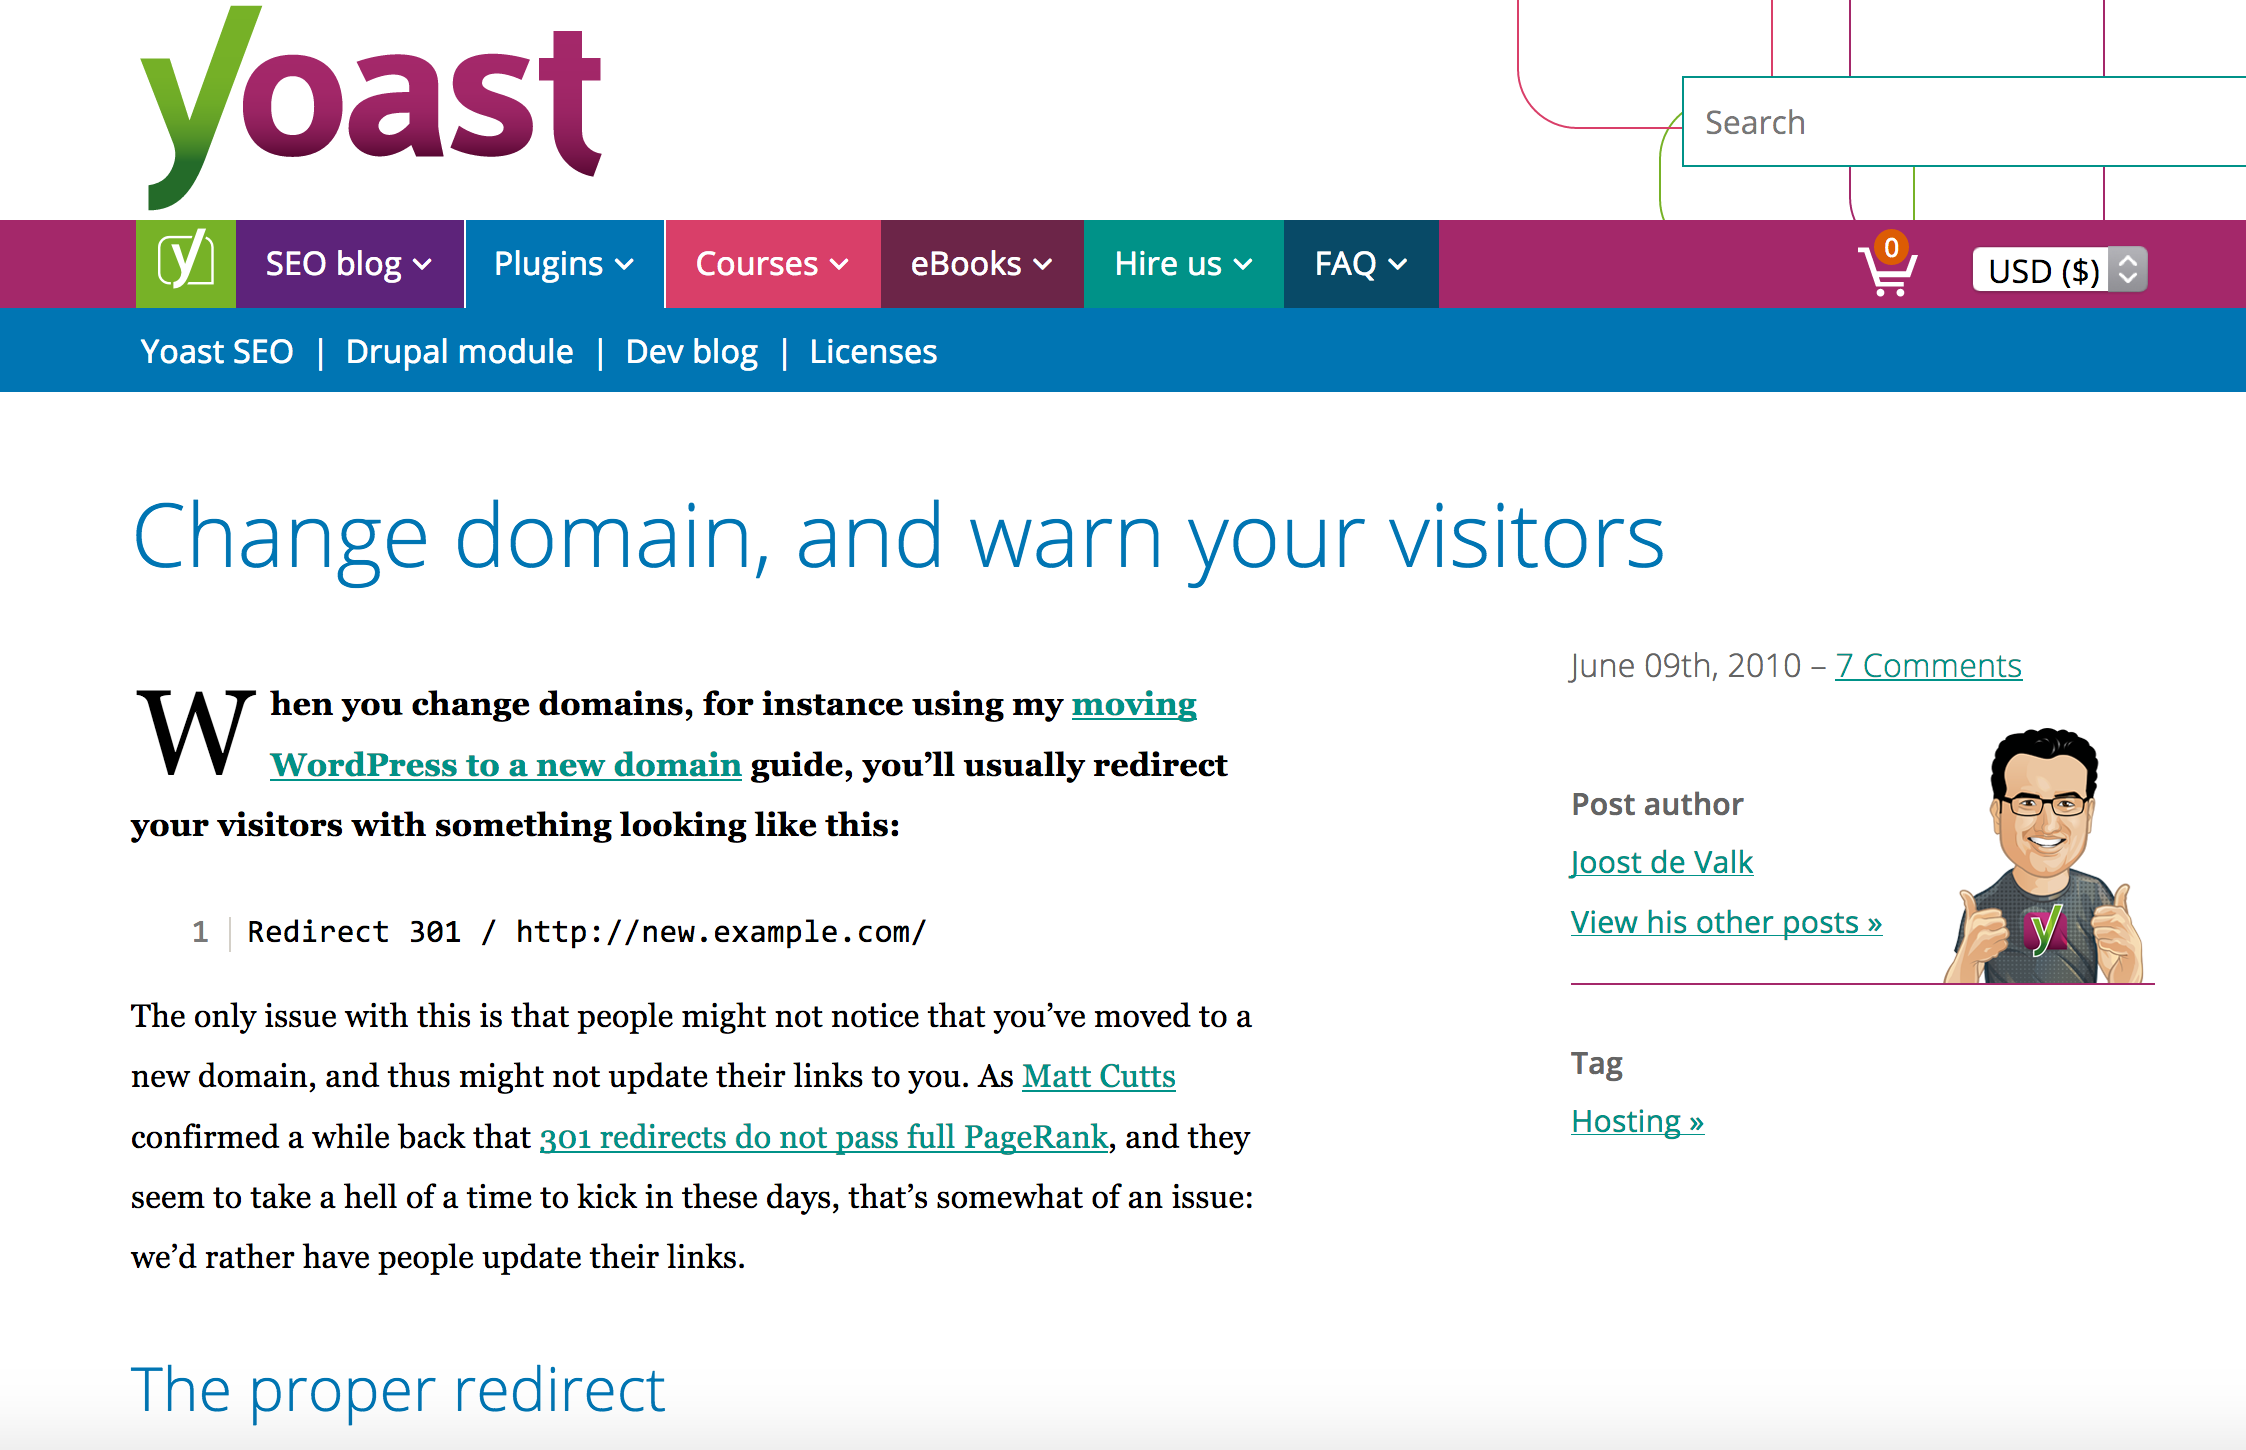 https://yoast.com/dev-blog/change-domain-name/